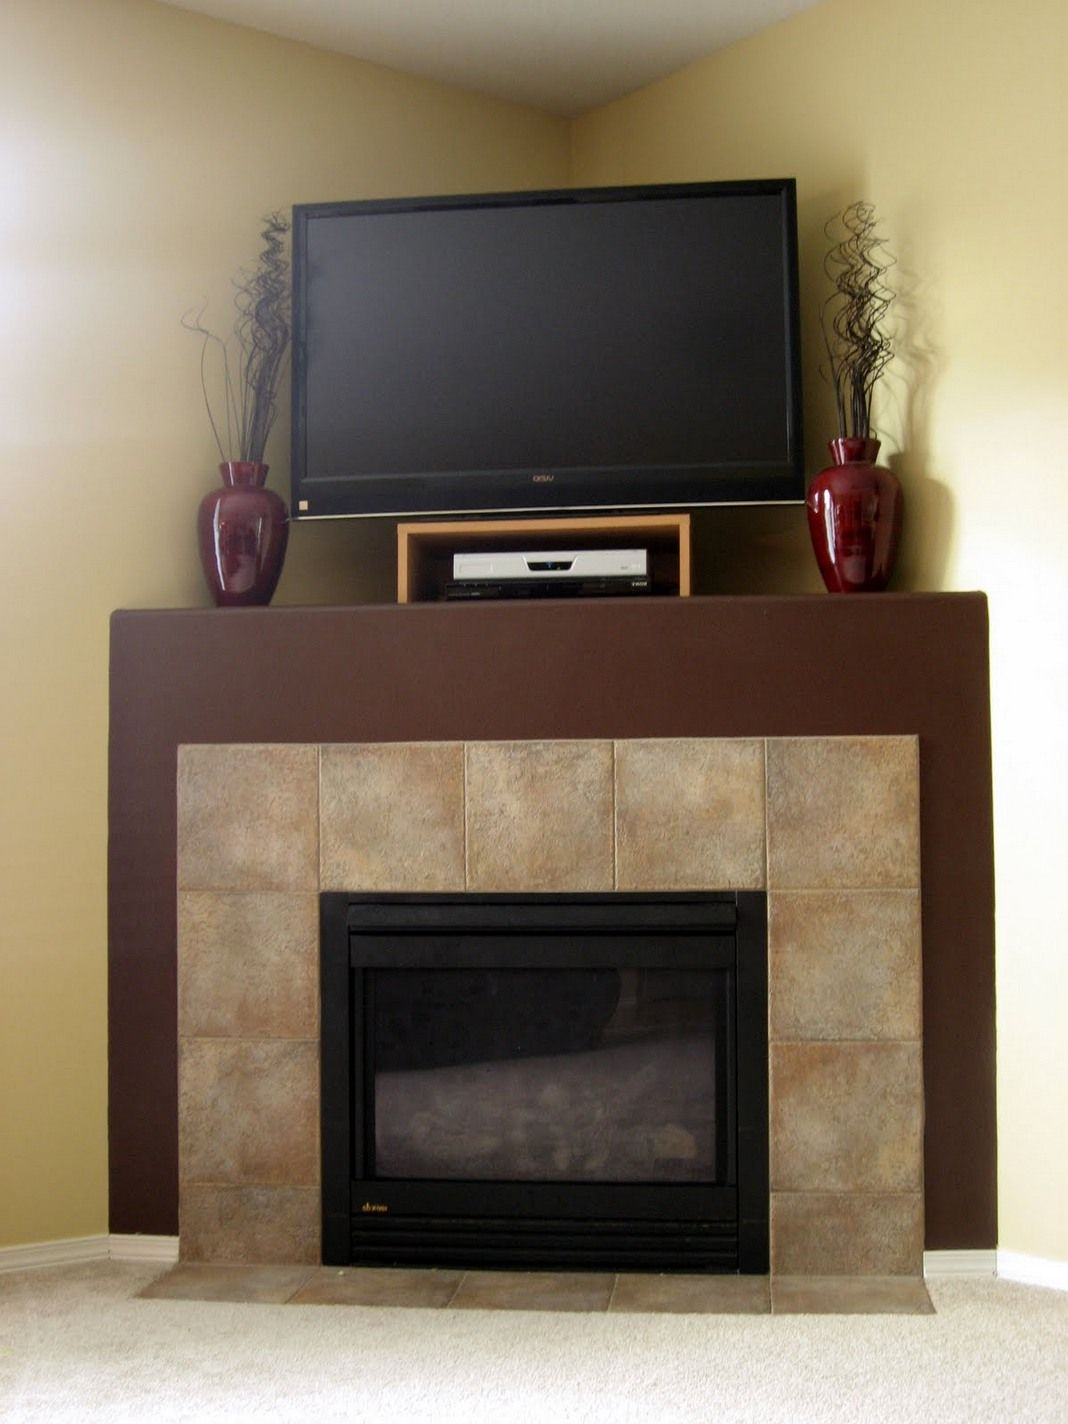 Corner Gas Fireplace Design Ideas gas insert fireplace mantels surrounds white corner fireplace Find This Pin And More On House Ideas Beautiful Corner Fireplace